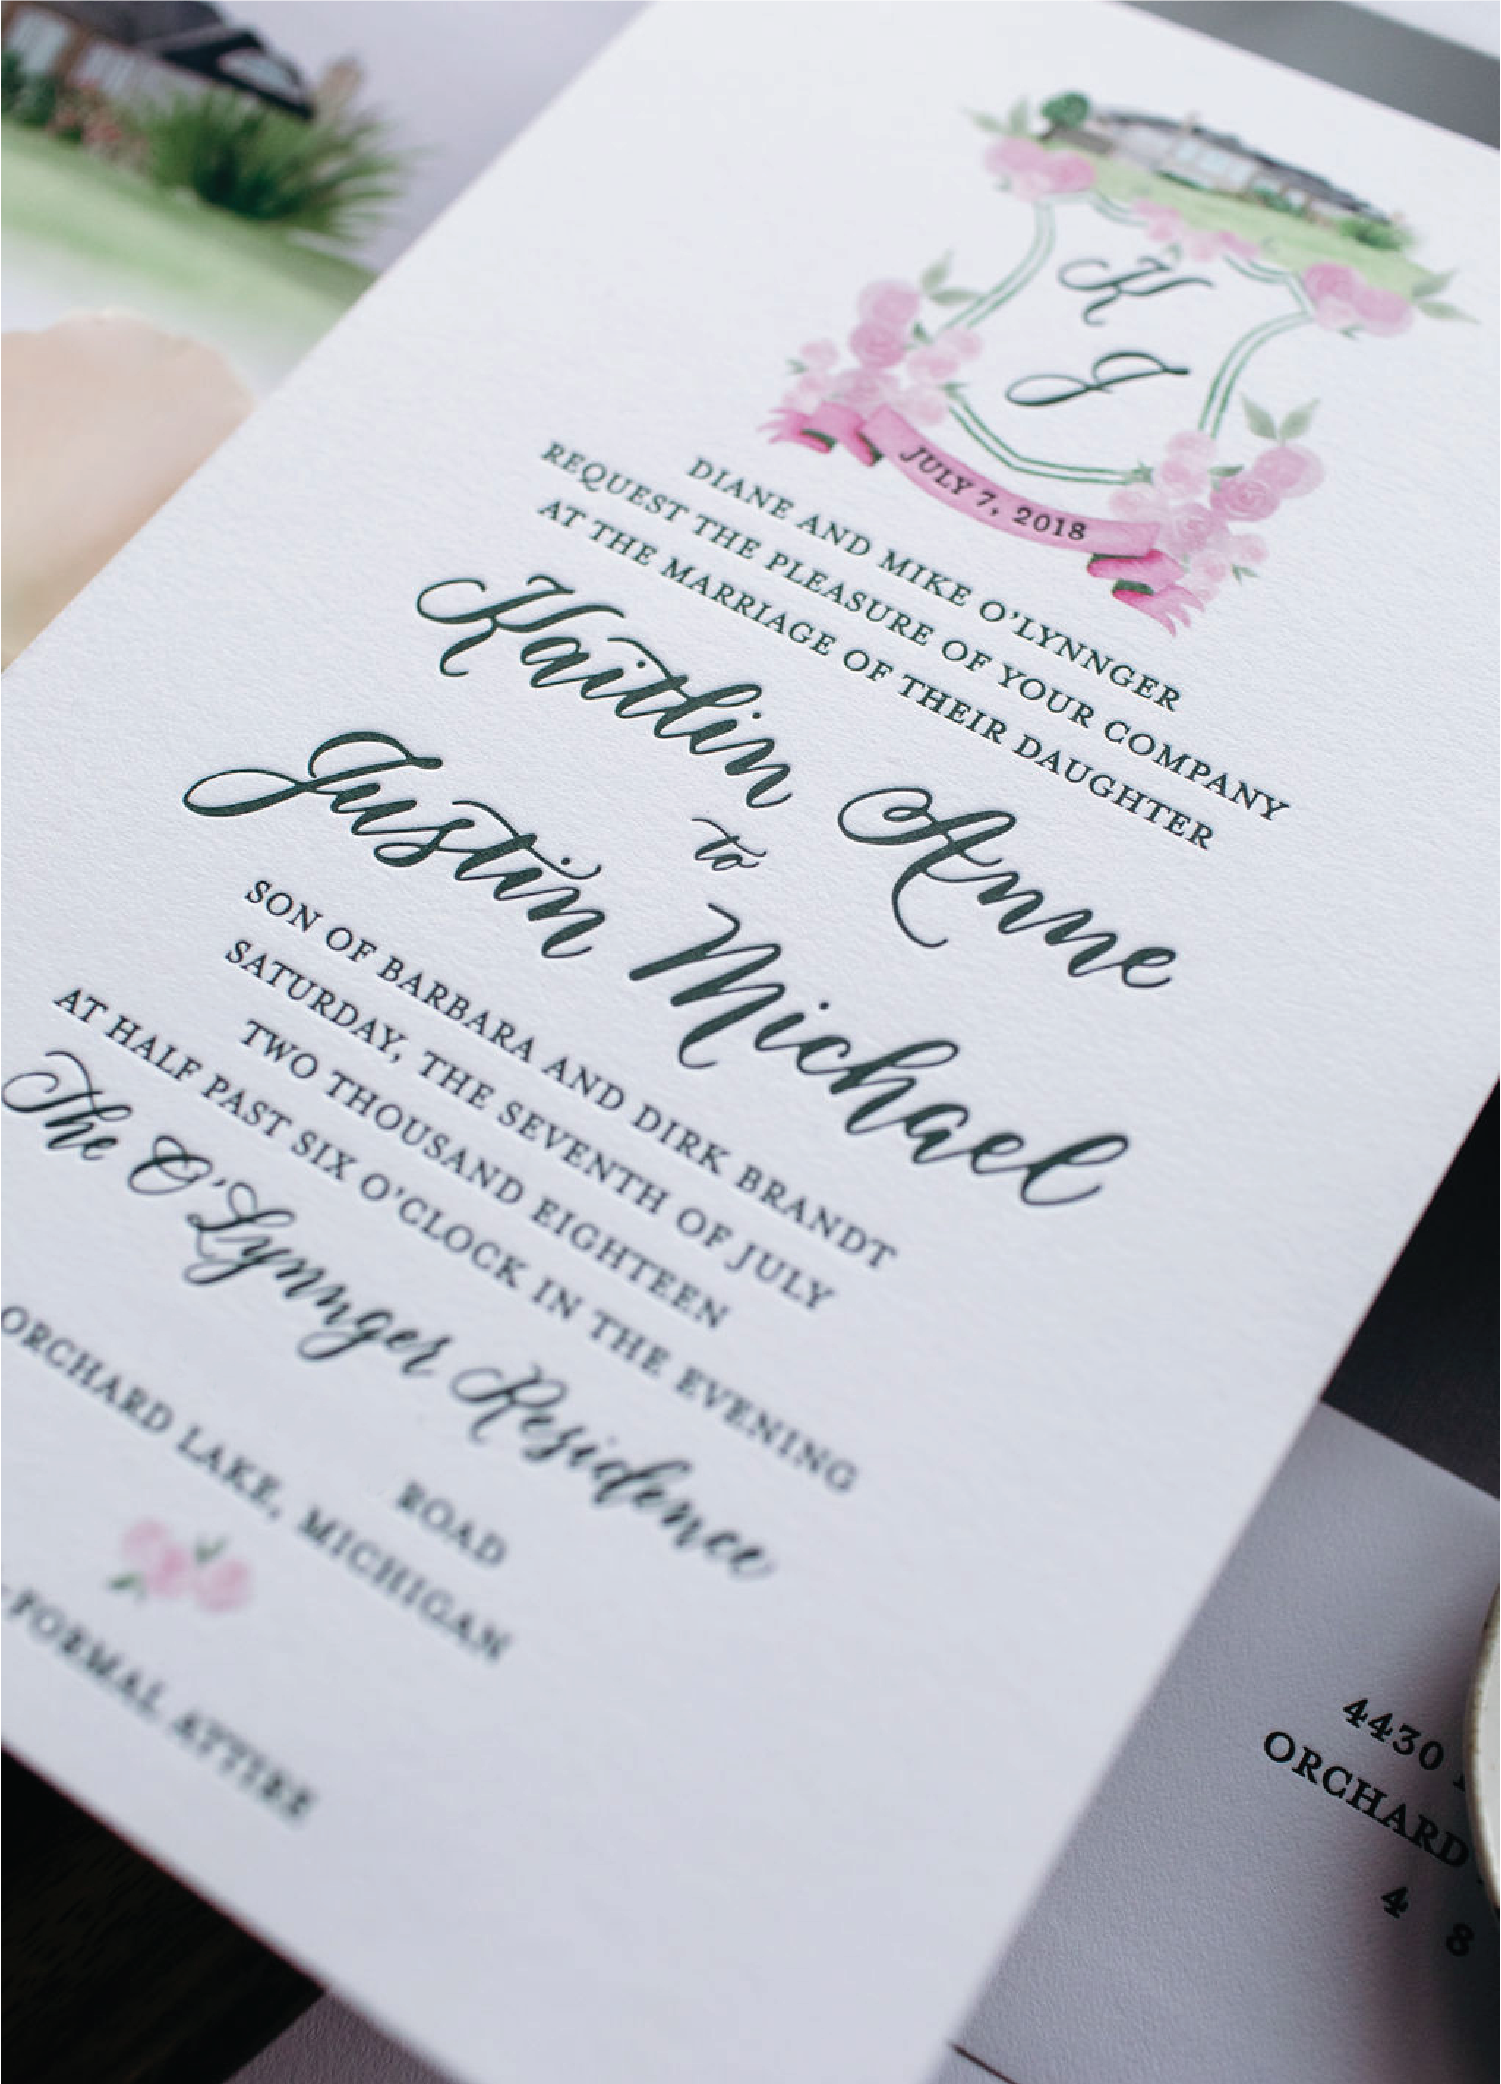 Modern script wedding invitations with calligraphy and crest with venue illustration by Leah E. Moss Designs for wedding at a private residence